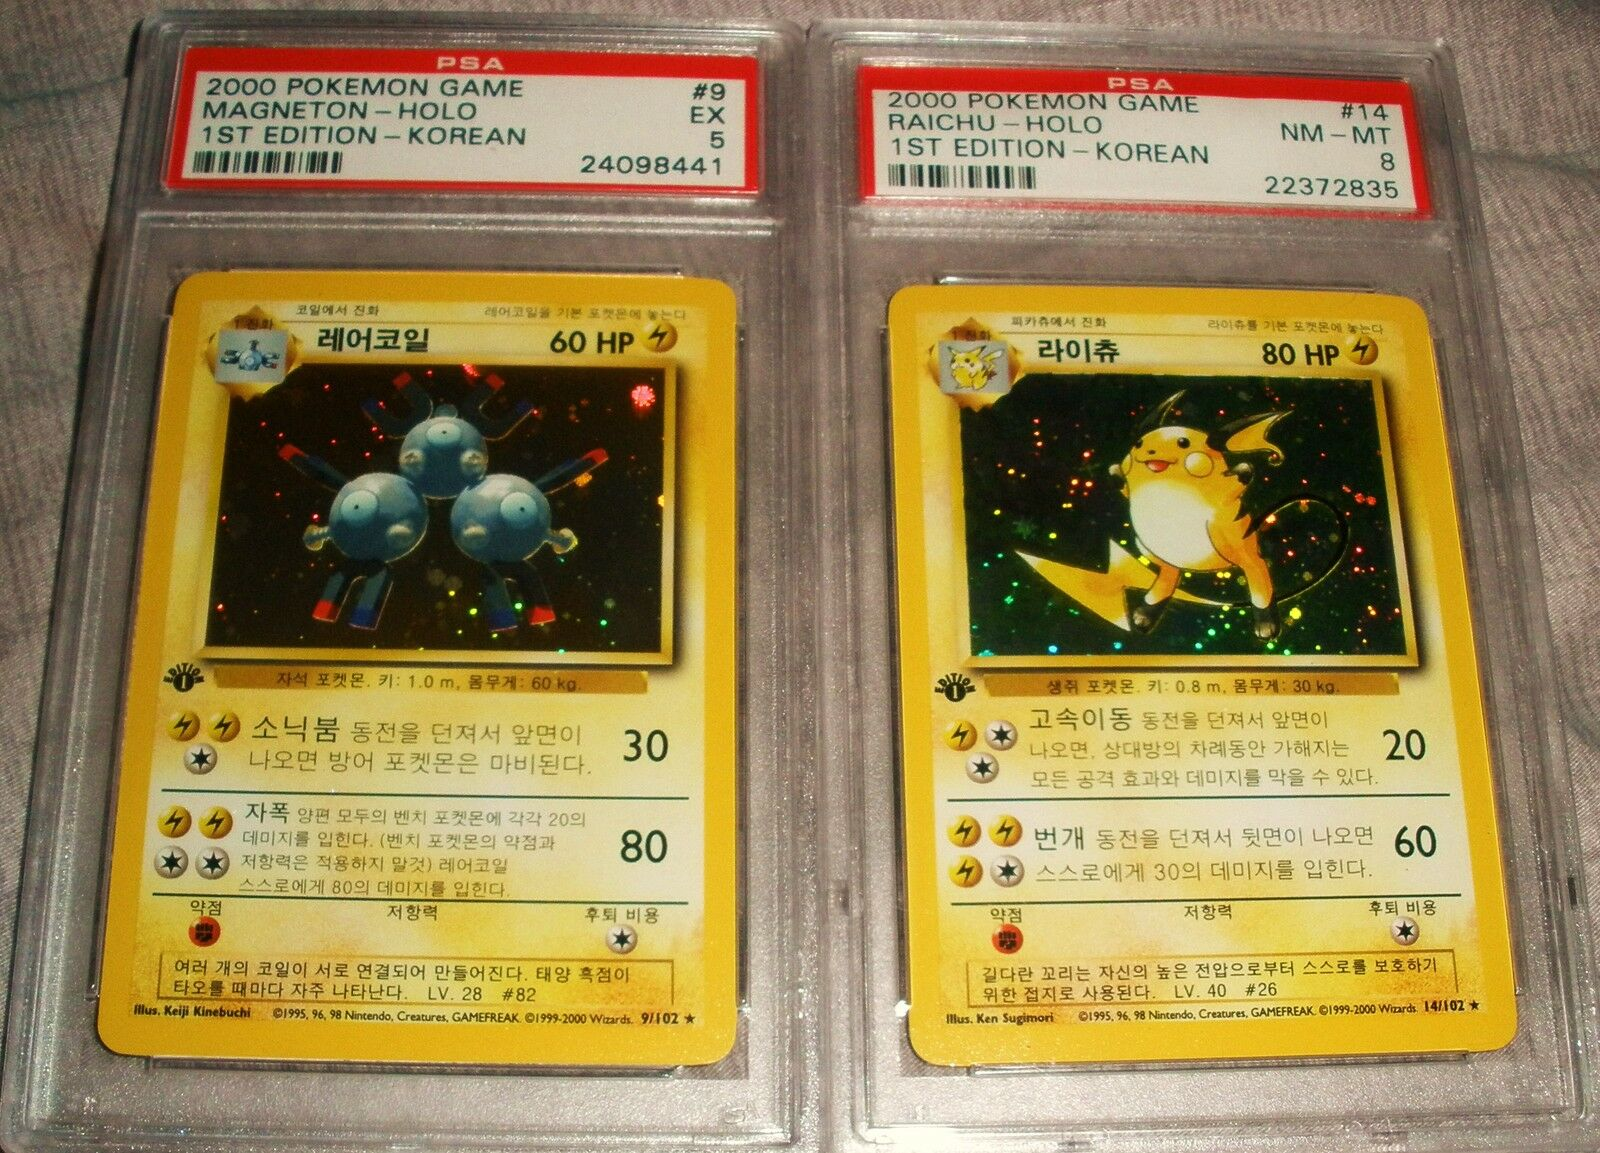 POKEMON RAICHU MAGNETON HOLO 1ST ED KOREAN BASE MINT PSA 8 AND EX 5